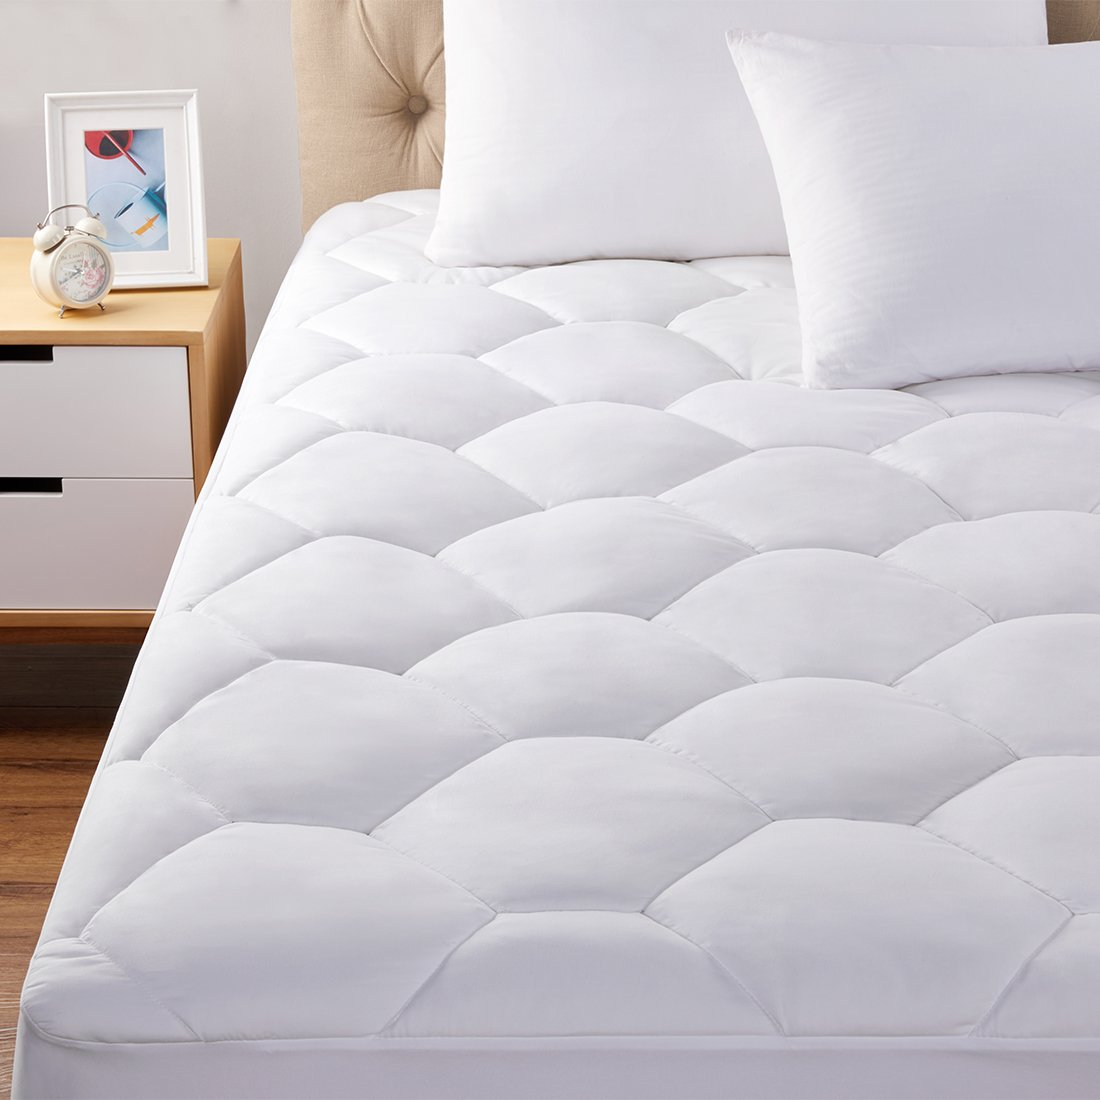 oaskys Full Size Mattress Pads Cover Down Alternative Fill Hypoallergenic Quilted Fitted Mattress Topper with deep Pocket Cooling and Breathable